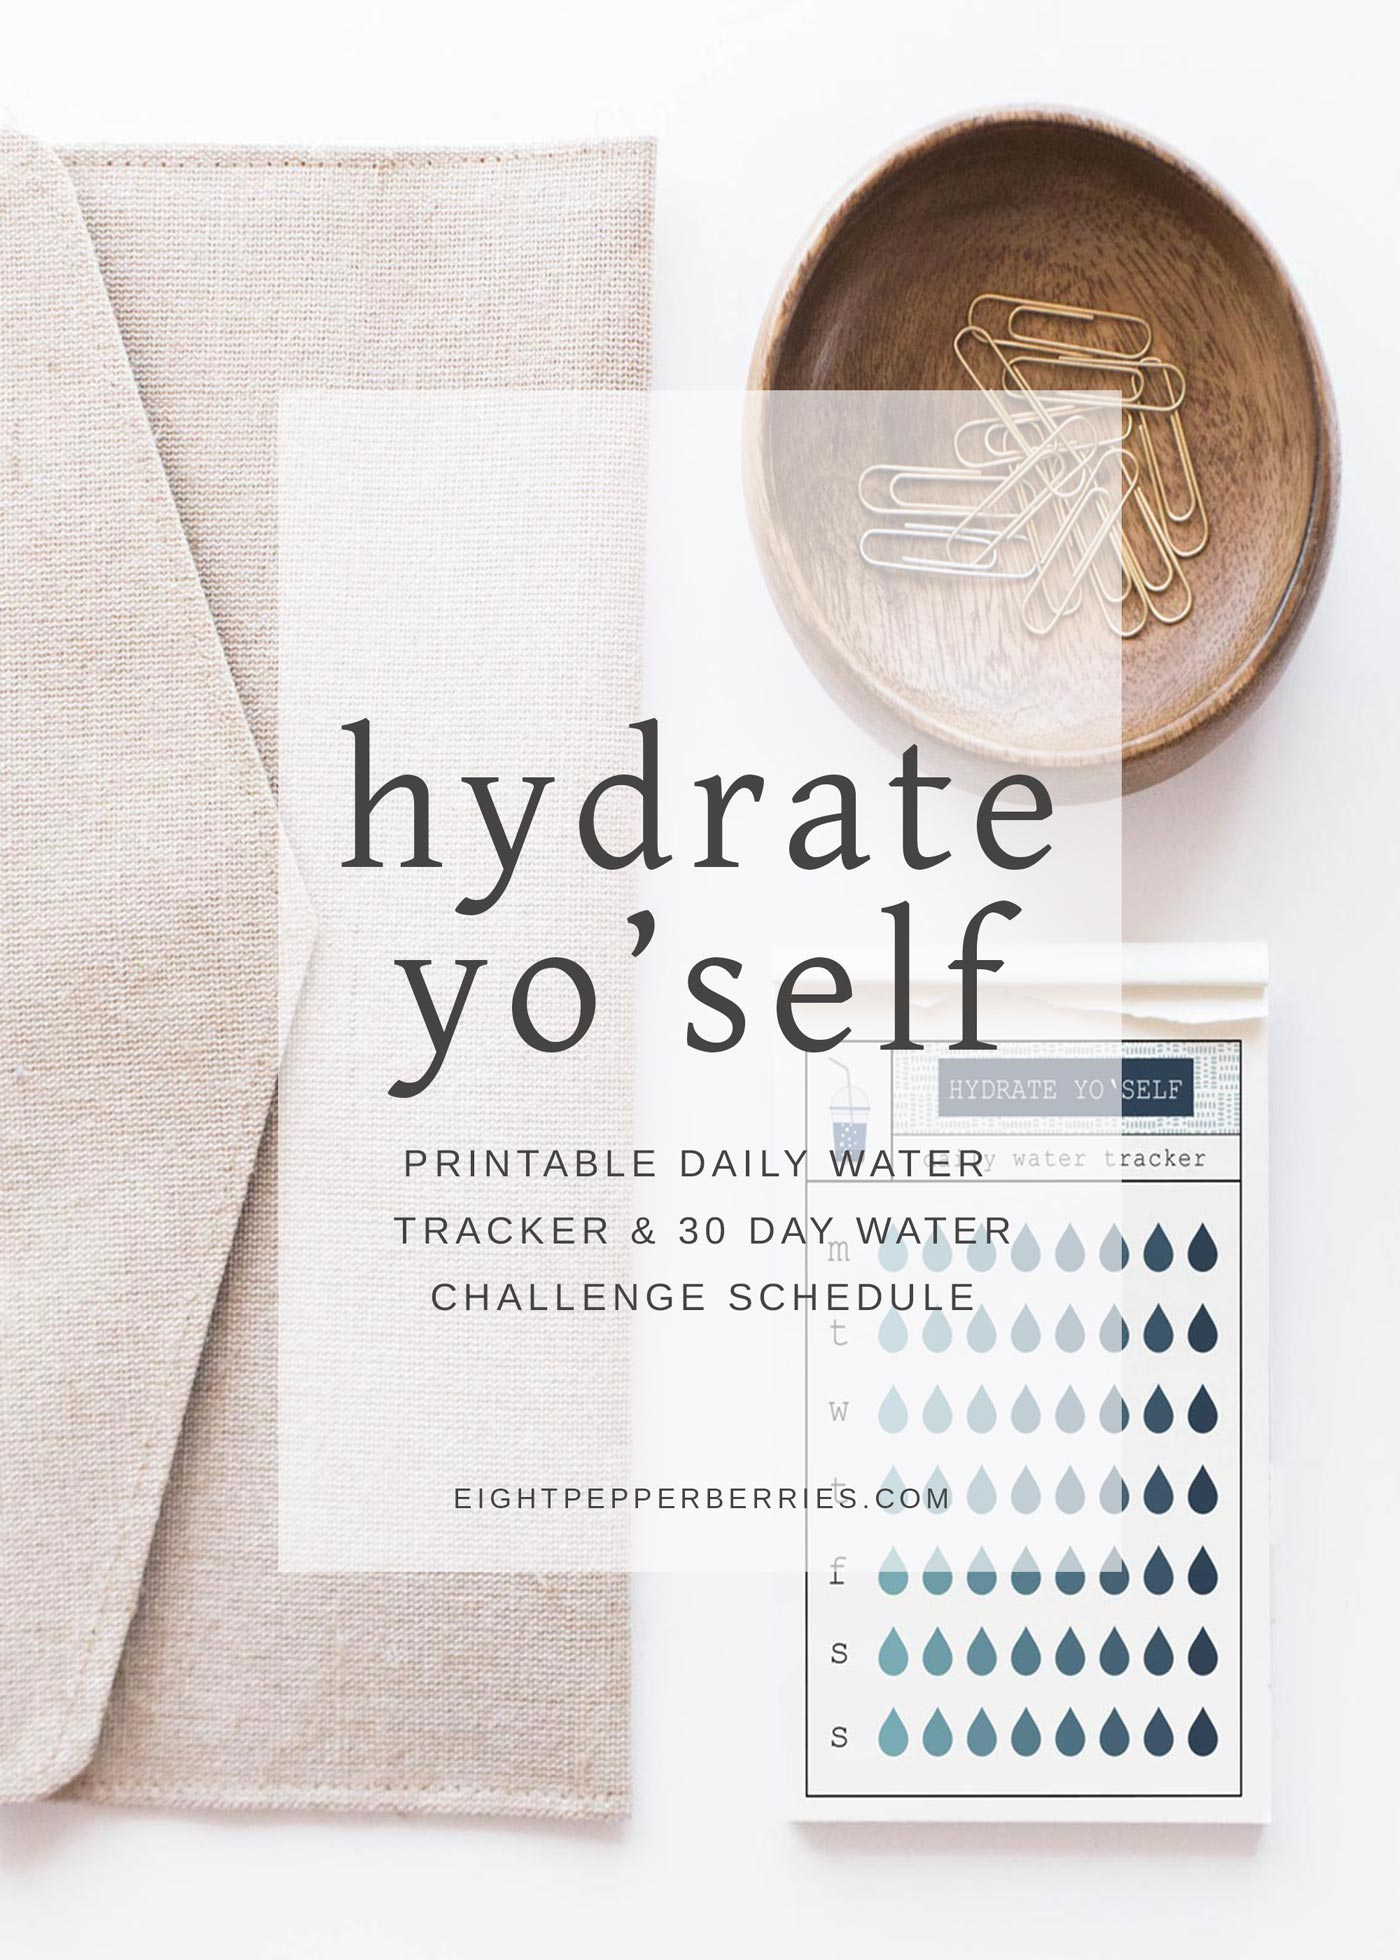 photograph about Printable Water Tracker called Hydrate Yo Self (printable drinking water tracker) » 8 Pepperberries